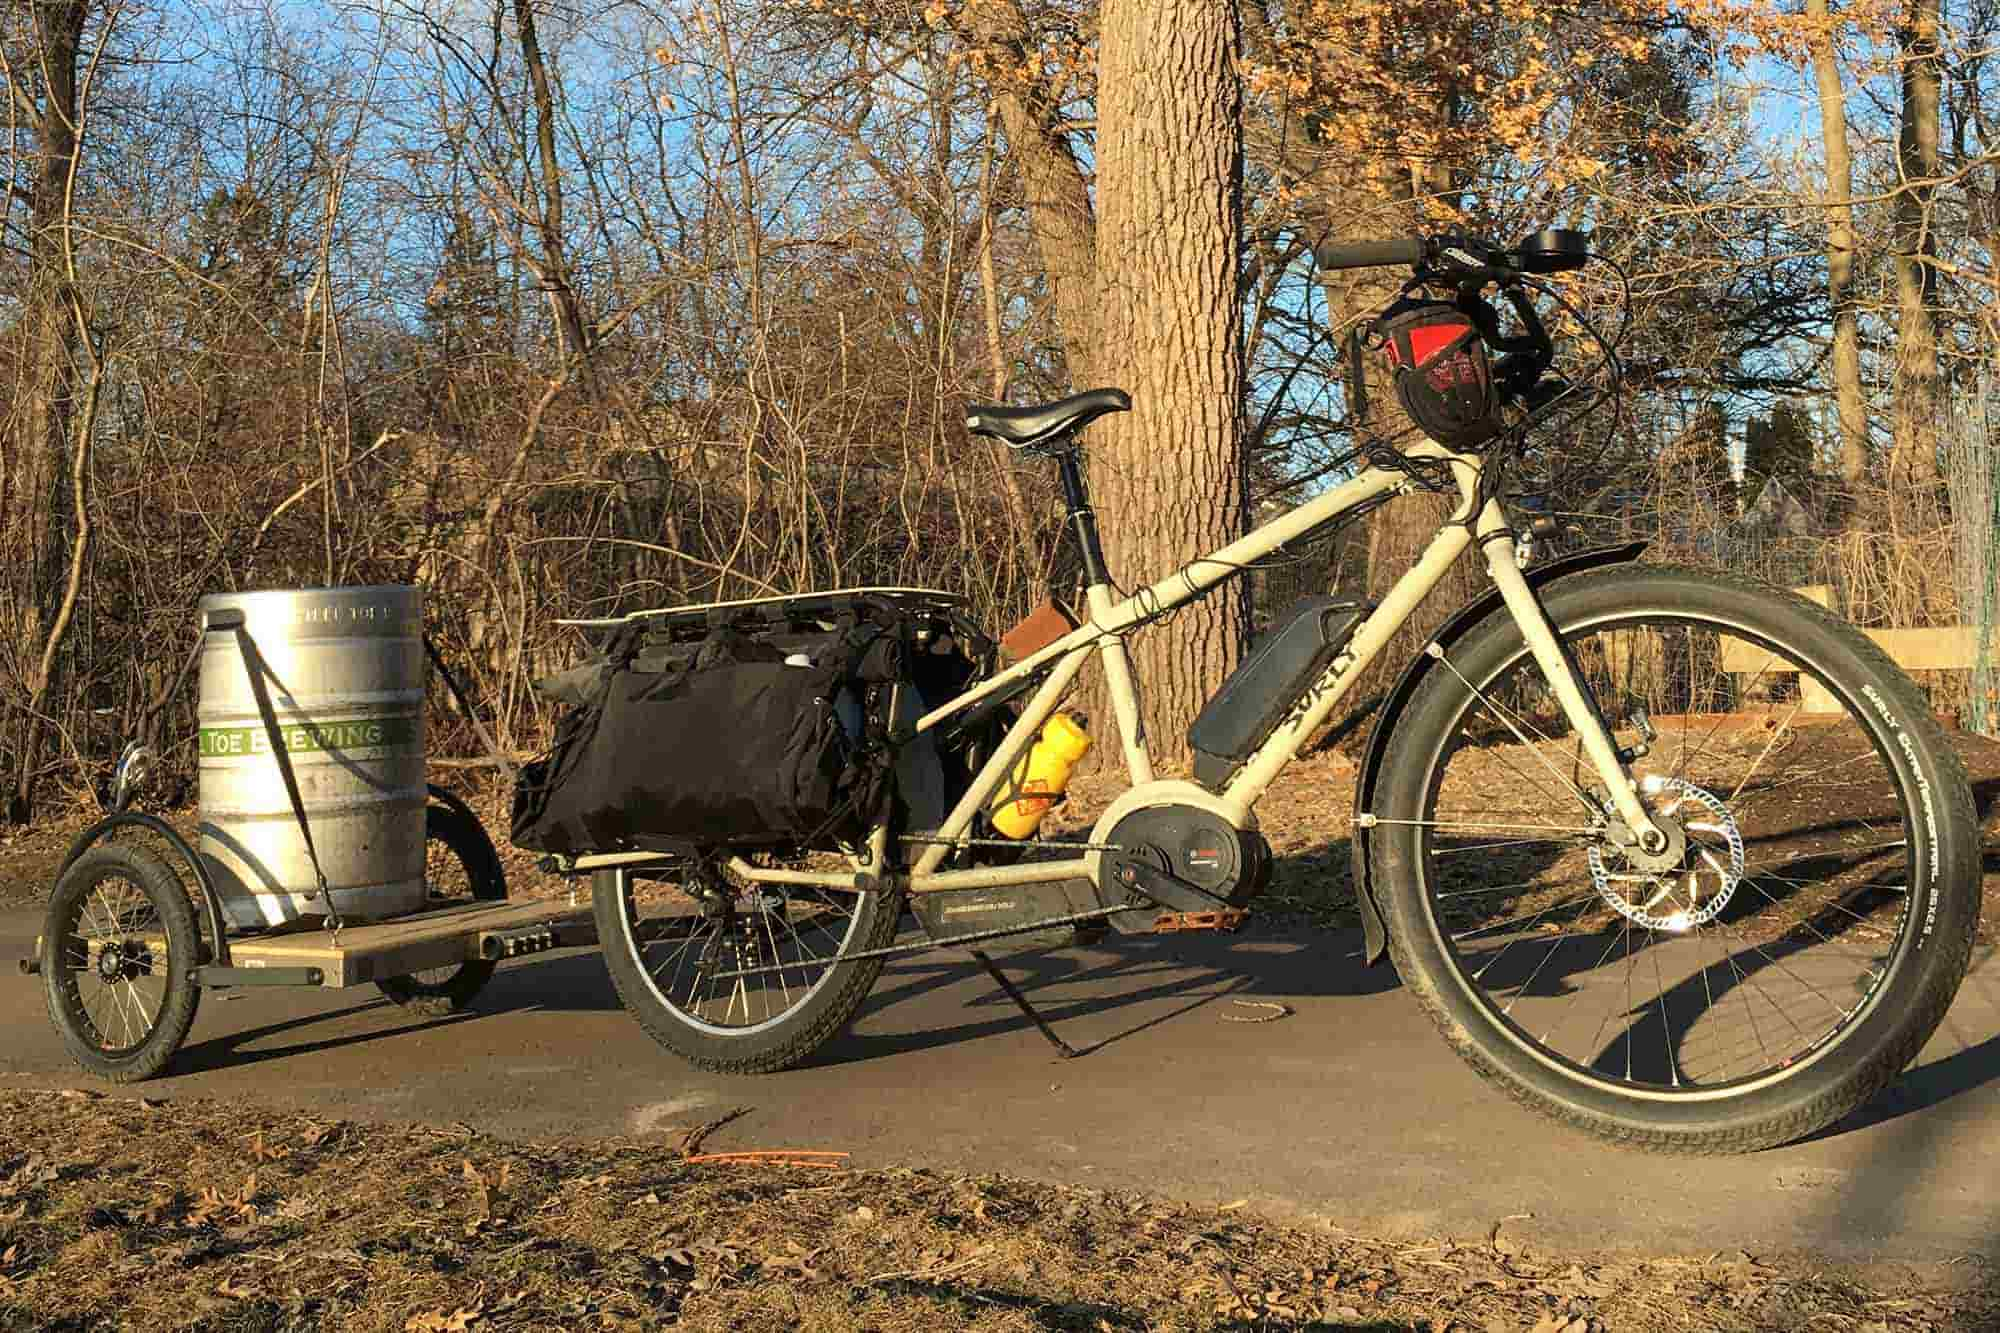 Right profile view of a tan Surly Big Easy bike with gear pulling a trailer with keg on a paved trail with trees behind